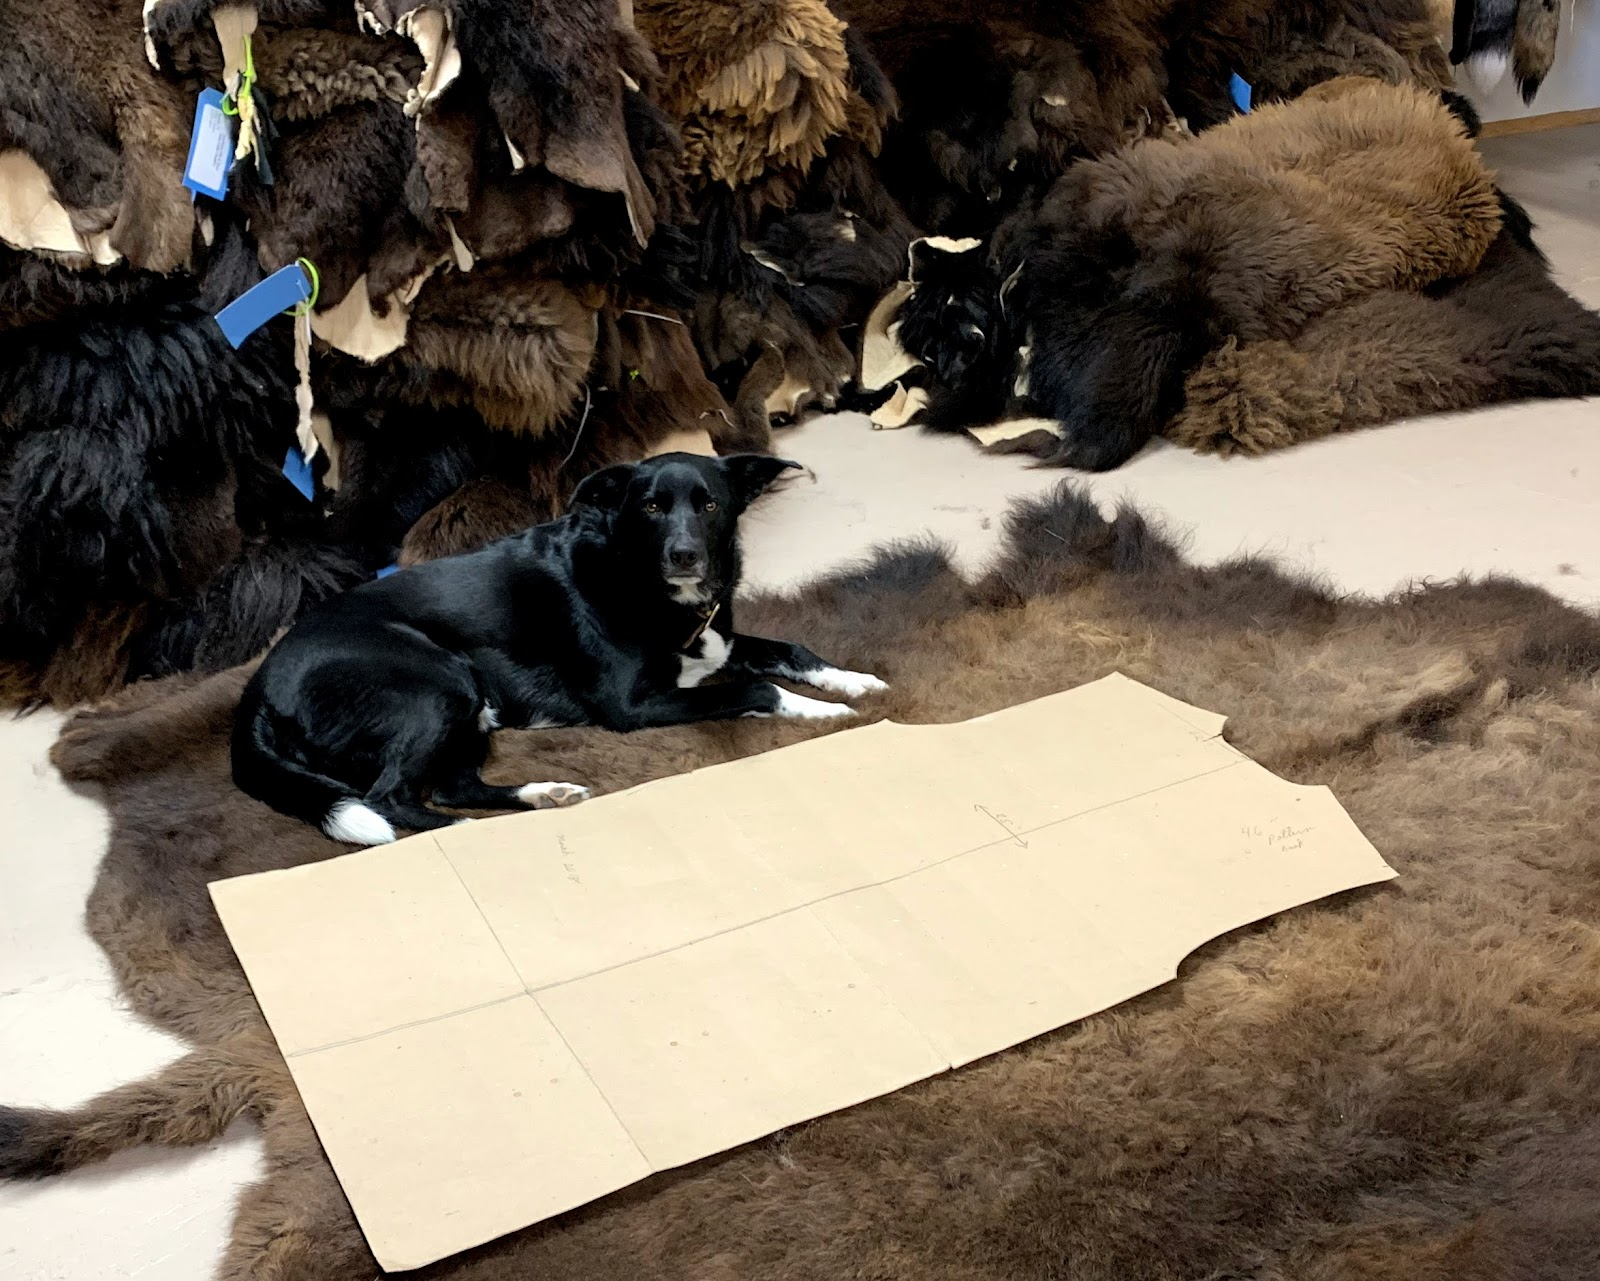 Billy the Kid (one of the shop puppies) lays on a buffalo rug next to a pattern cut out.